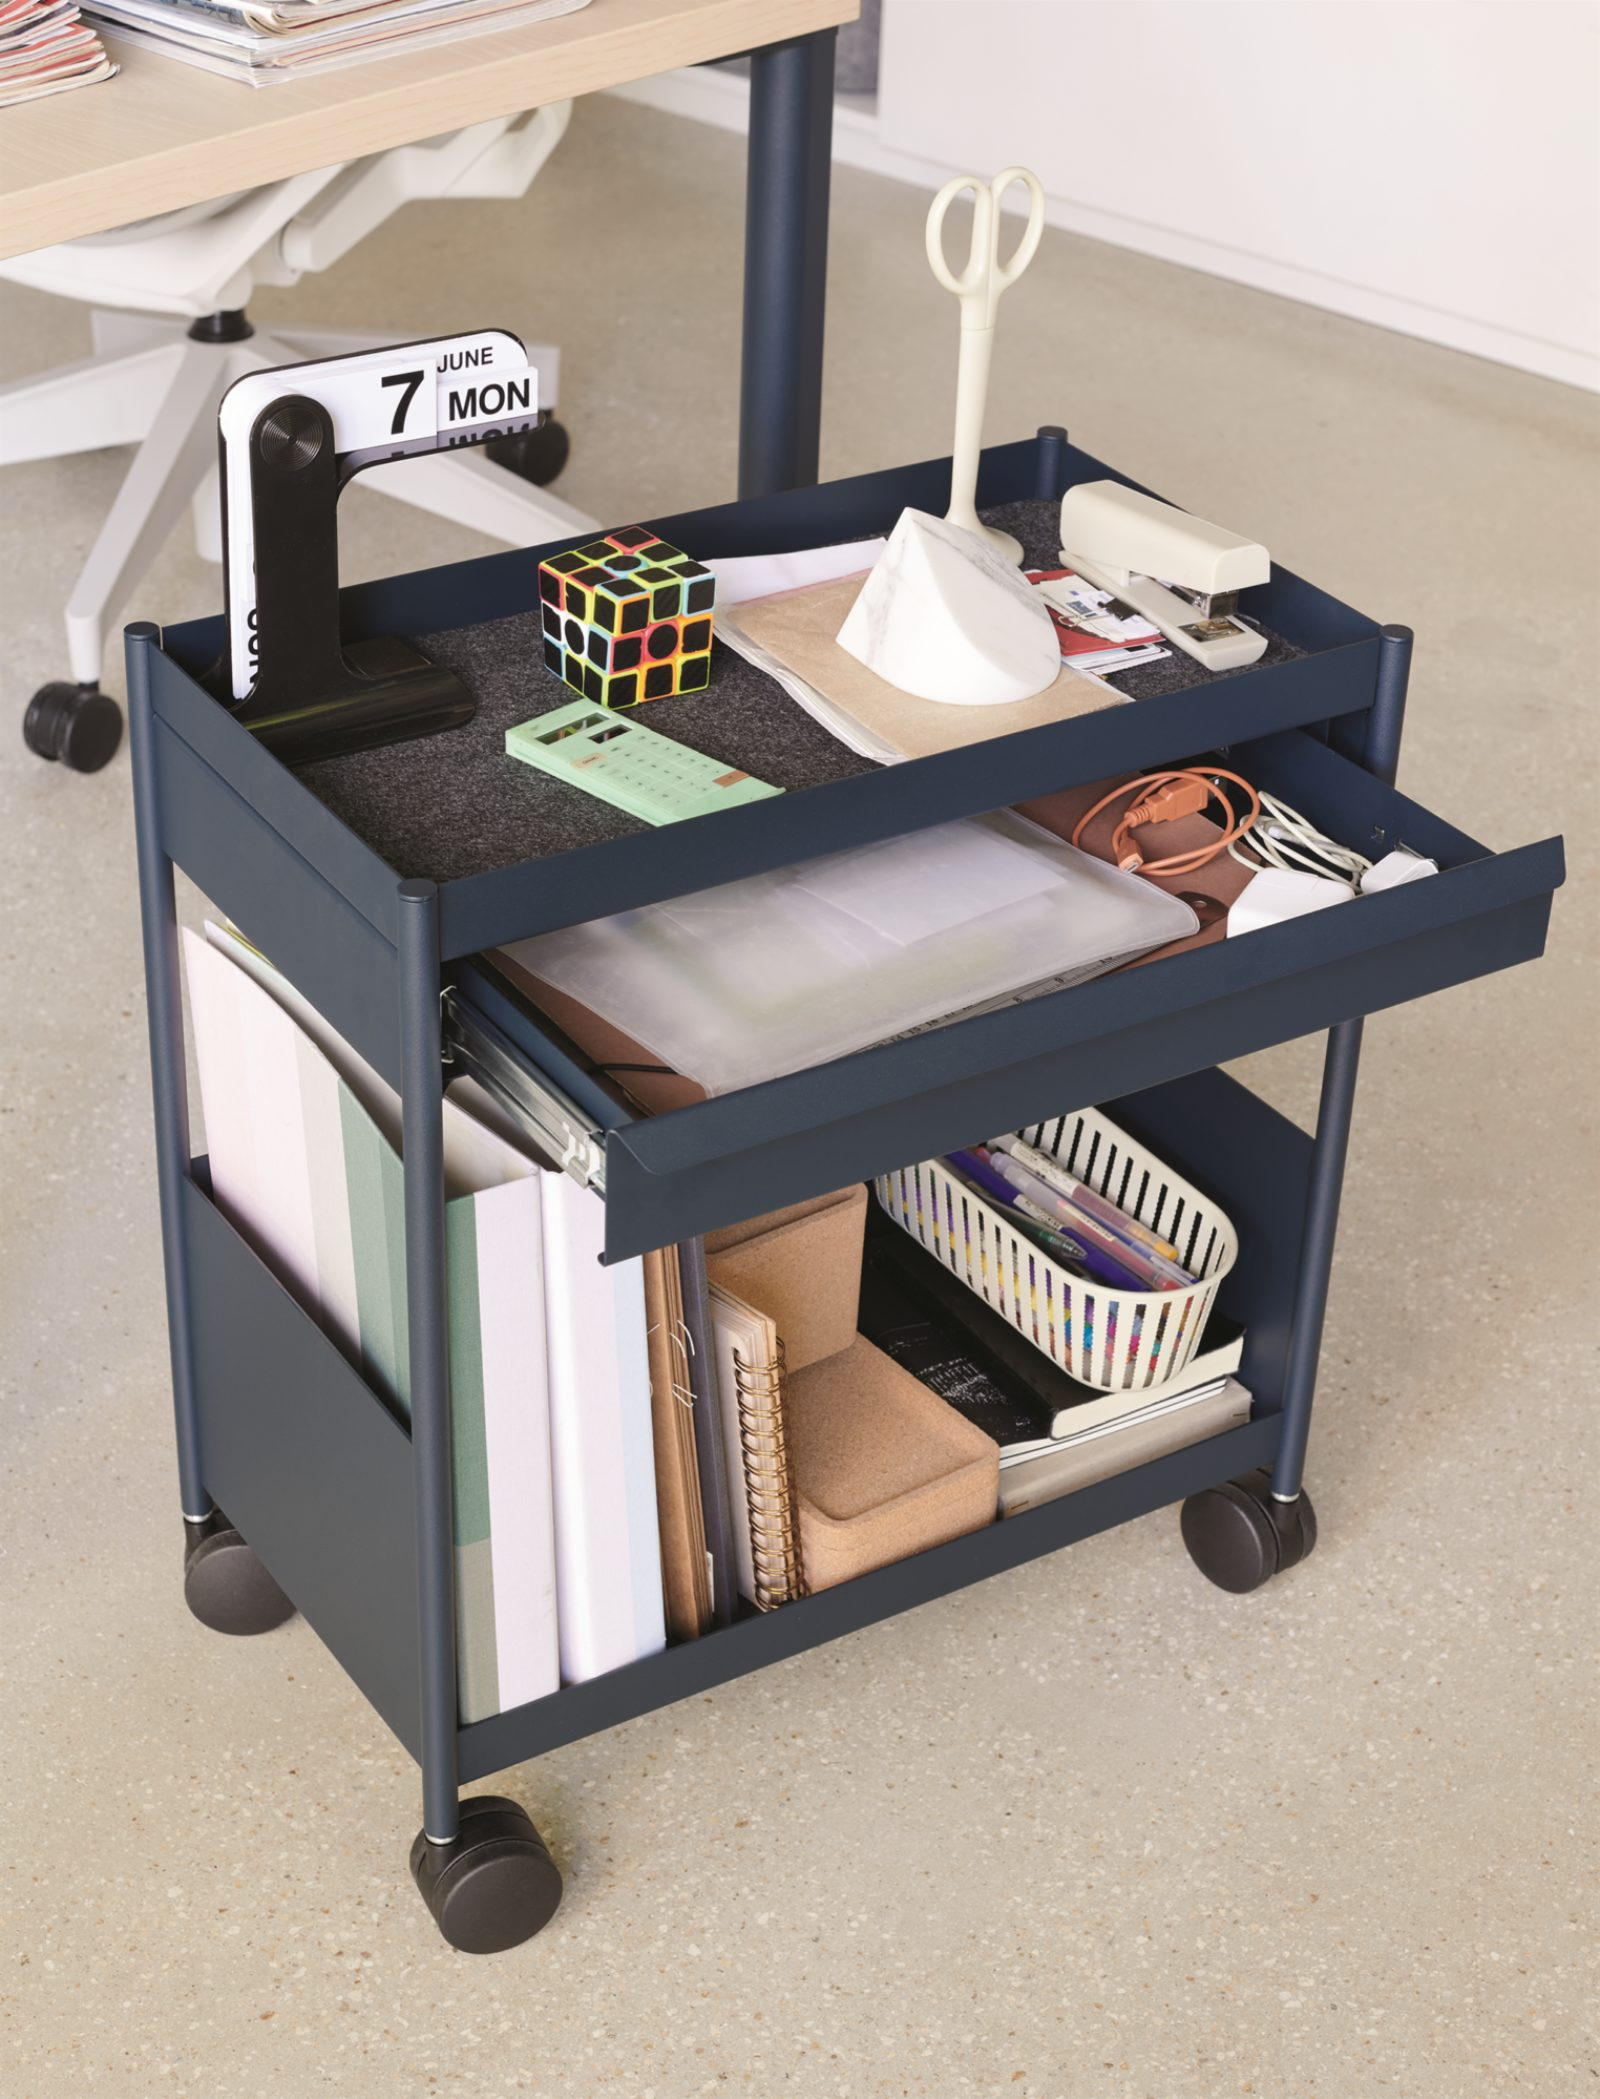 A navy individual OE1 Storage Trolley with the top filled with personal items, a pulled out drawer of papers, and binders and books on the bottom shelf.